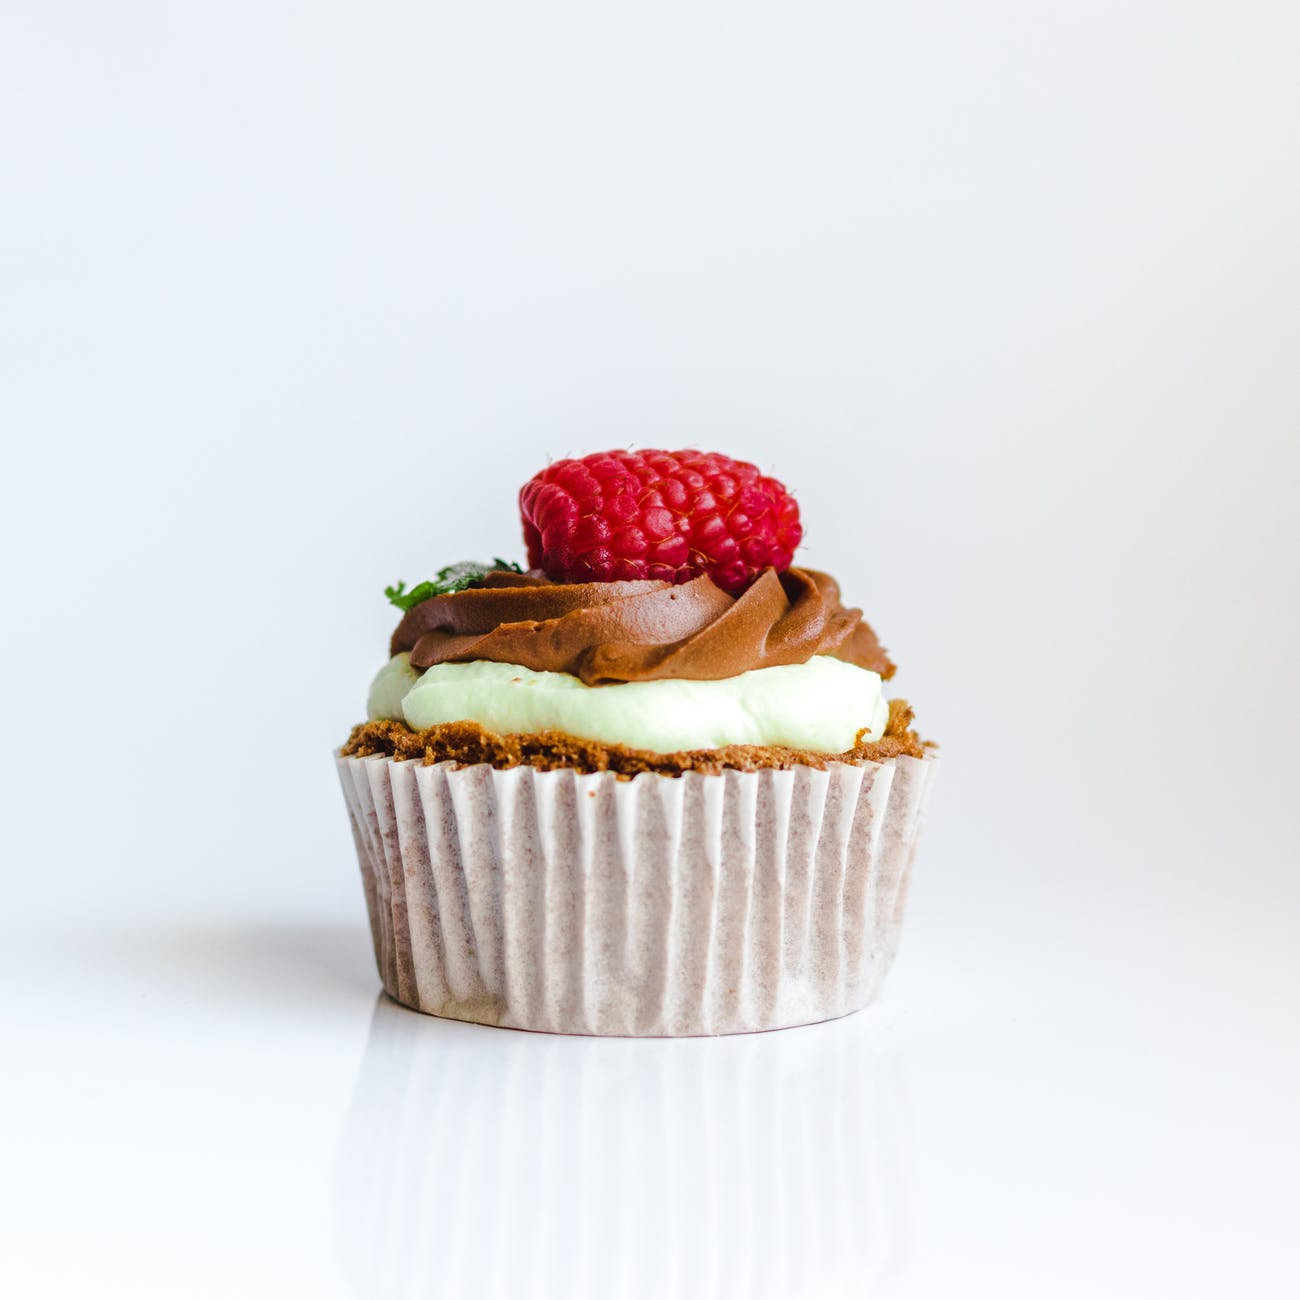 photograph of chocolate cupcake with red strawberry toppings